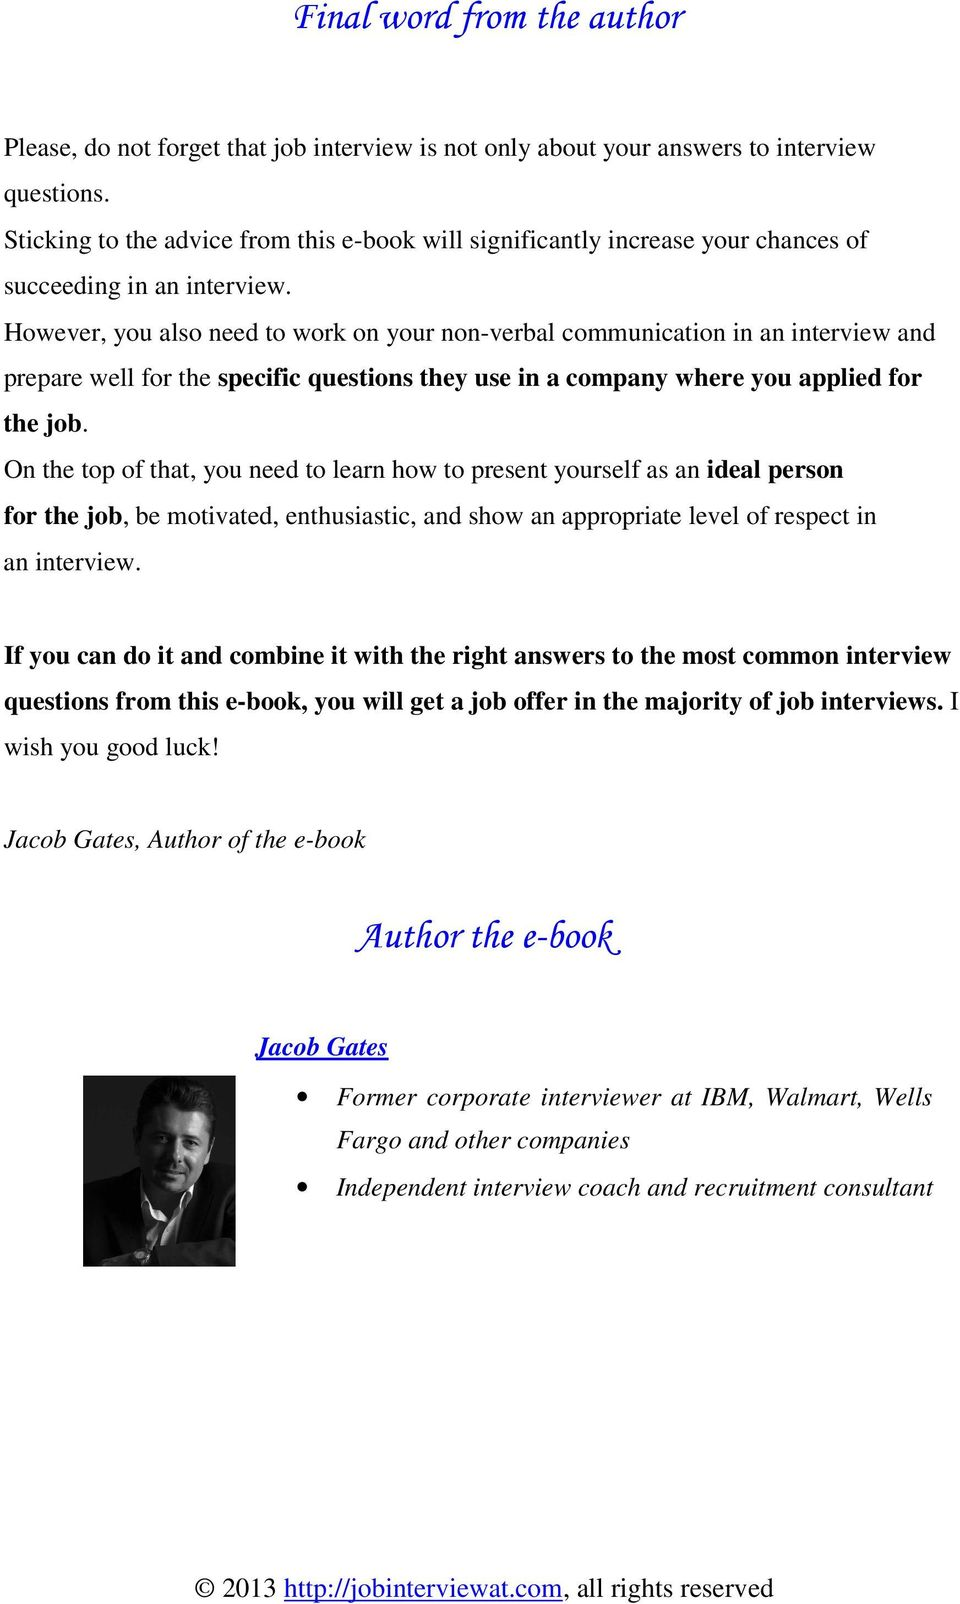 Walmart Interview Questions And Answers | 15 Most Typically Used Interview Questions And Answers Pdf